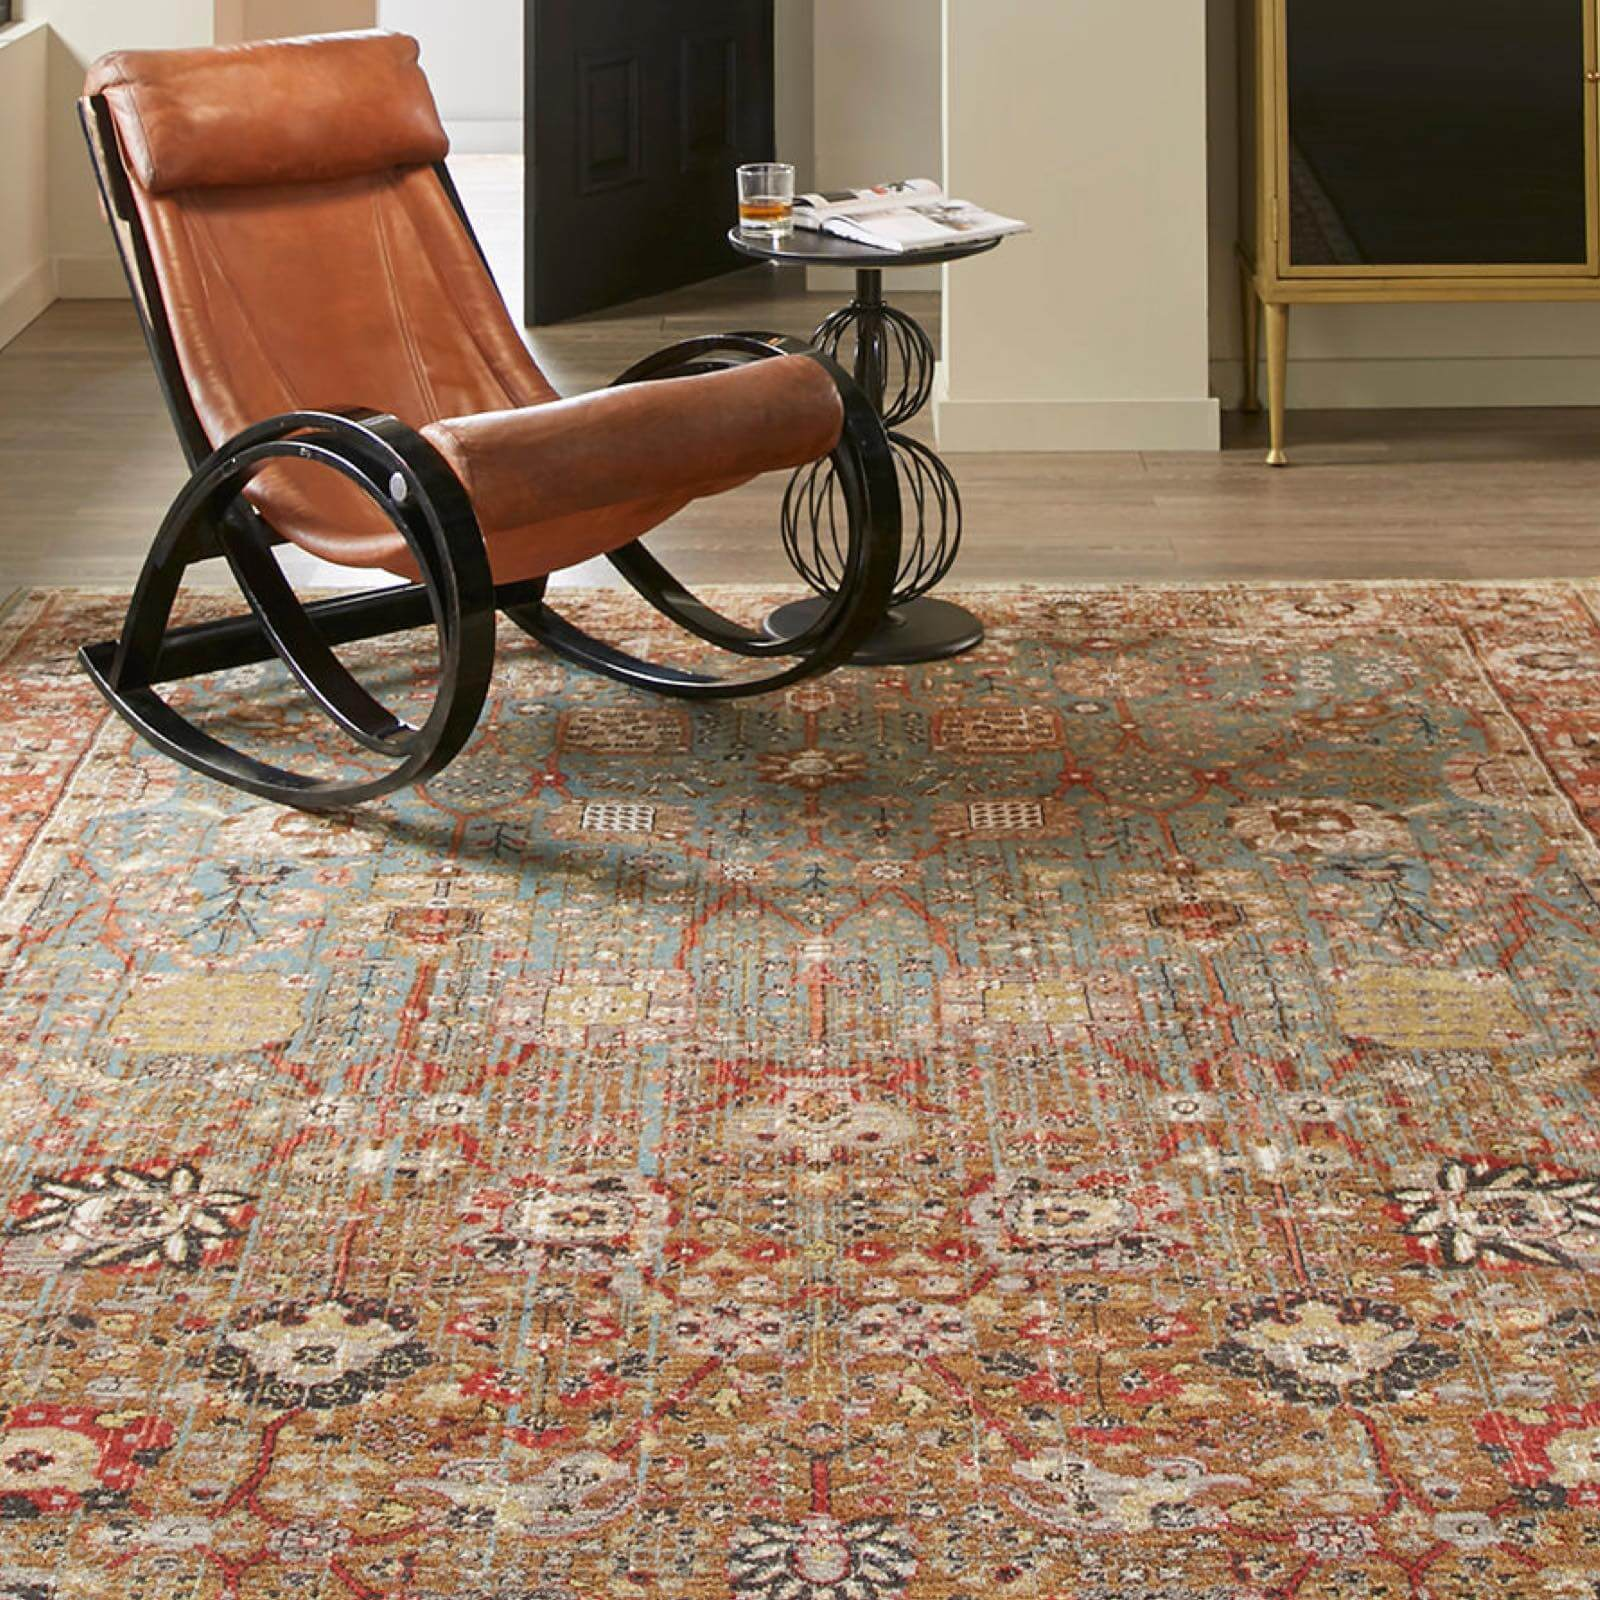 Armchair on Area Rug | Floors by Roberts